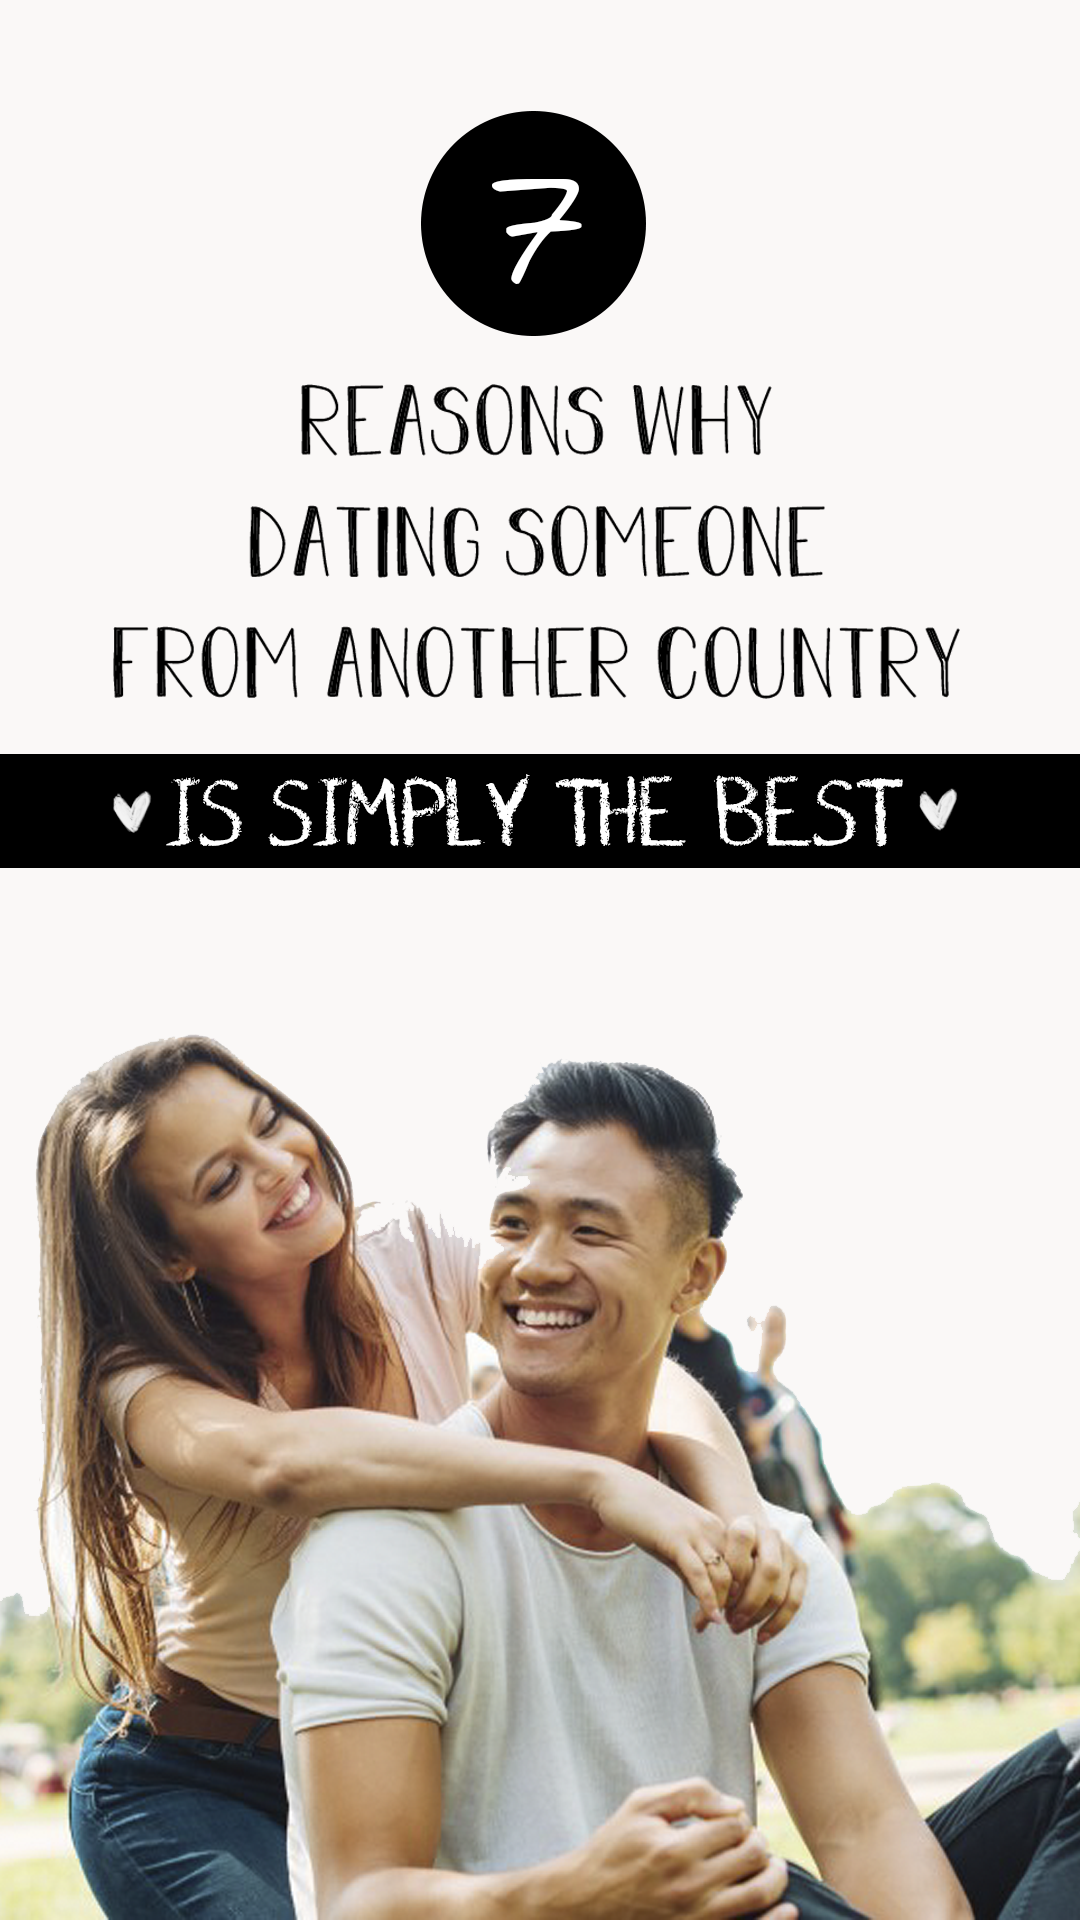 dating someone from a different country